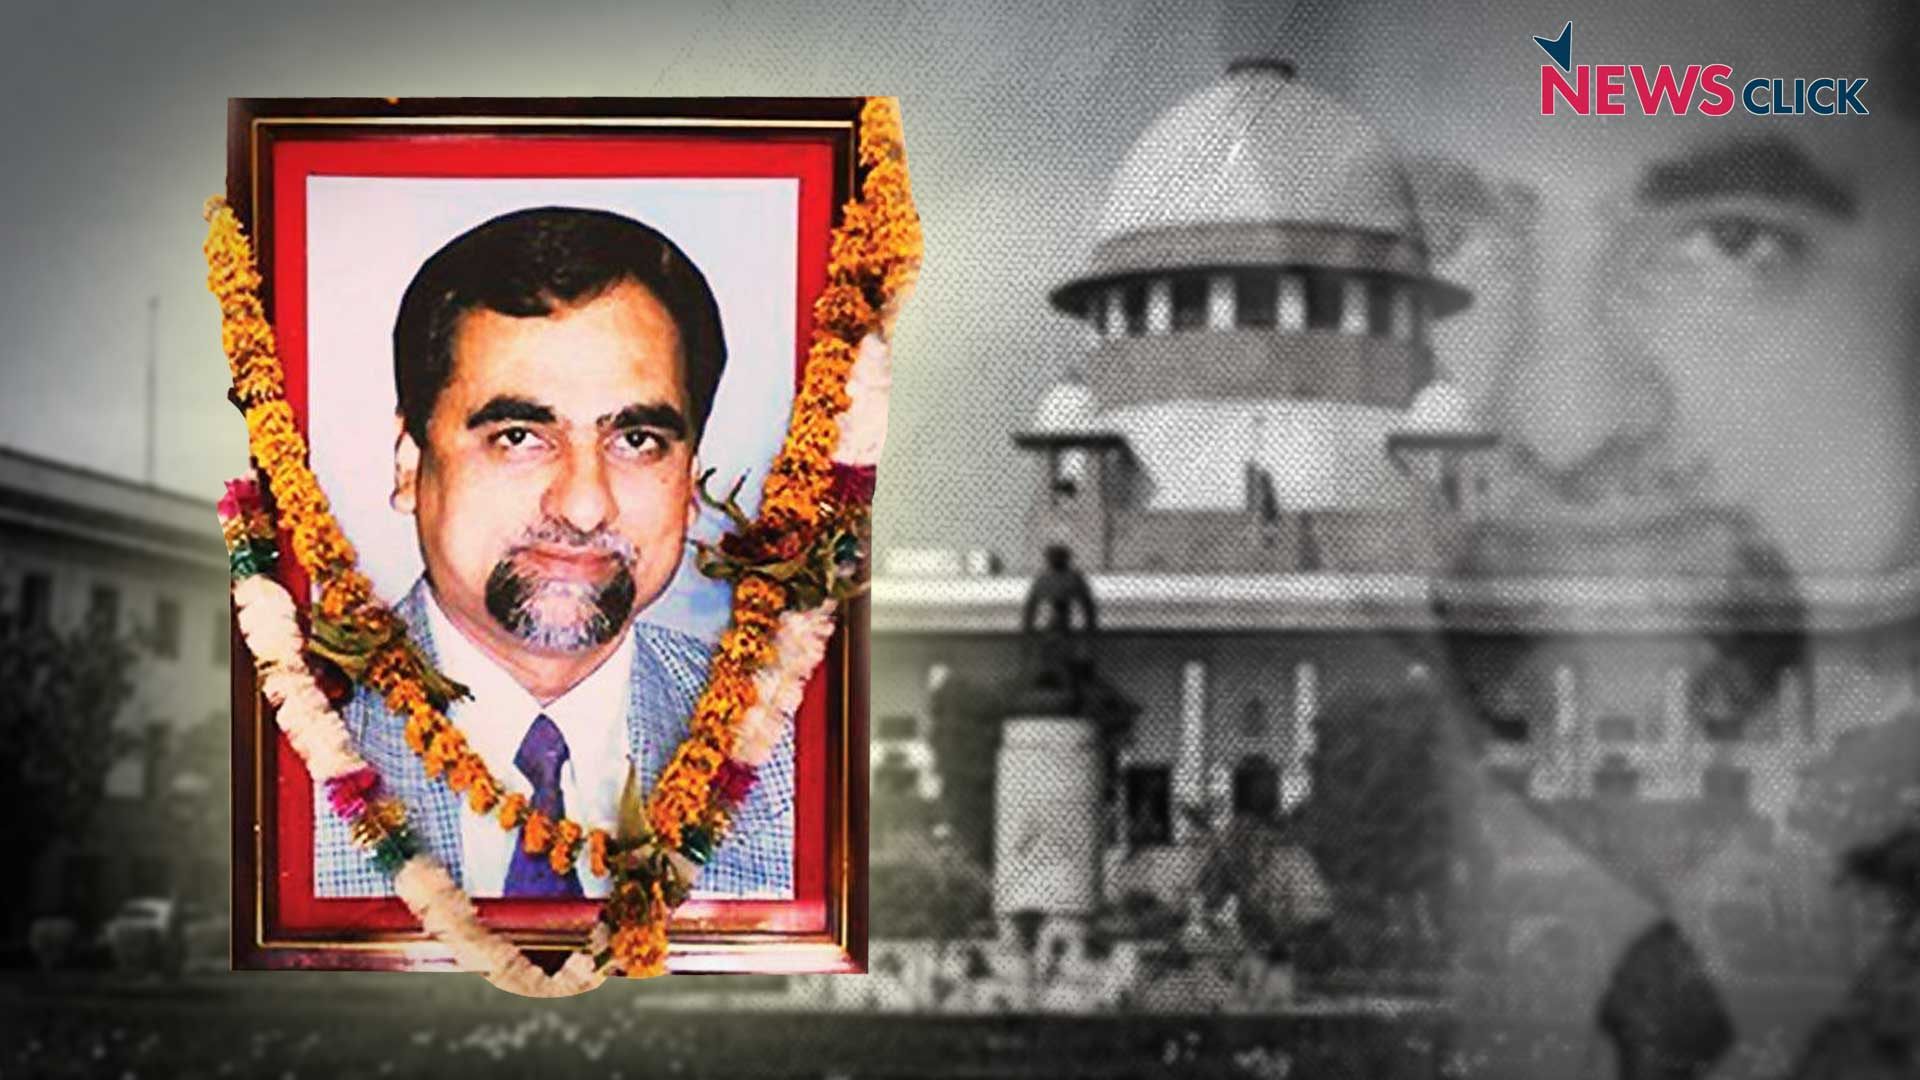 Cong demands Independent SIT probe into deaths of Judge Loya